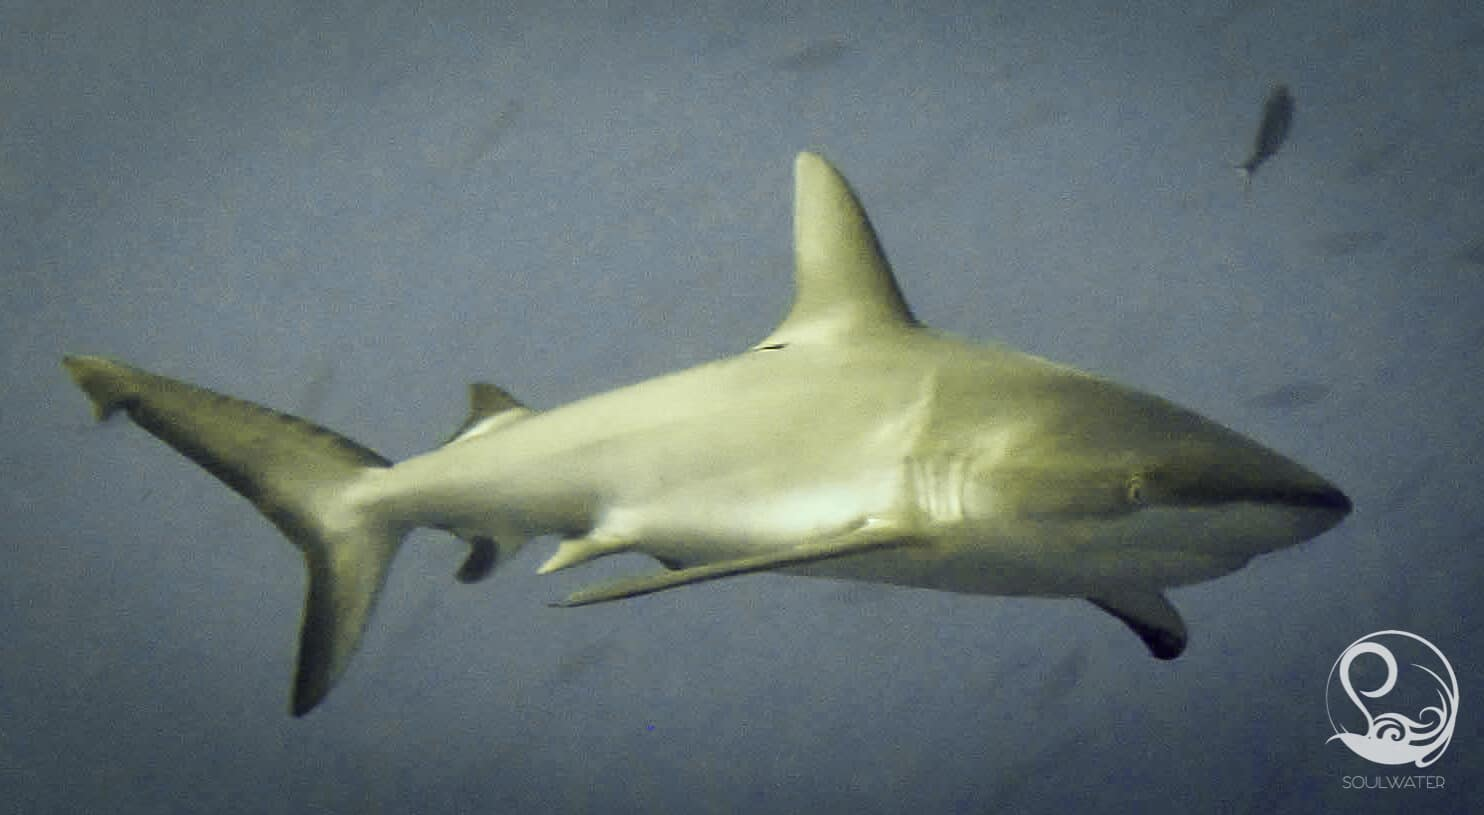 Grey Reef Shark in Palau